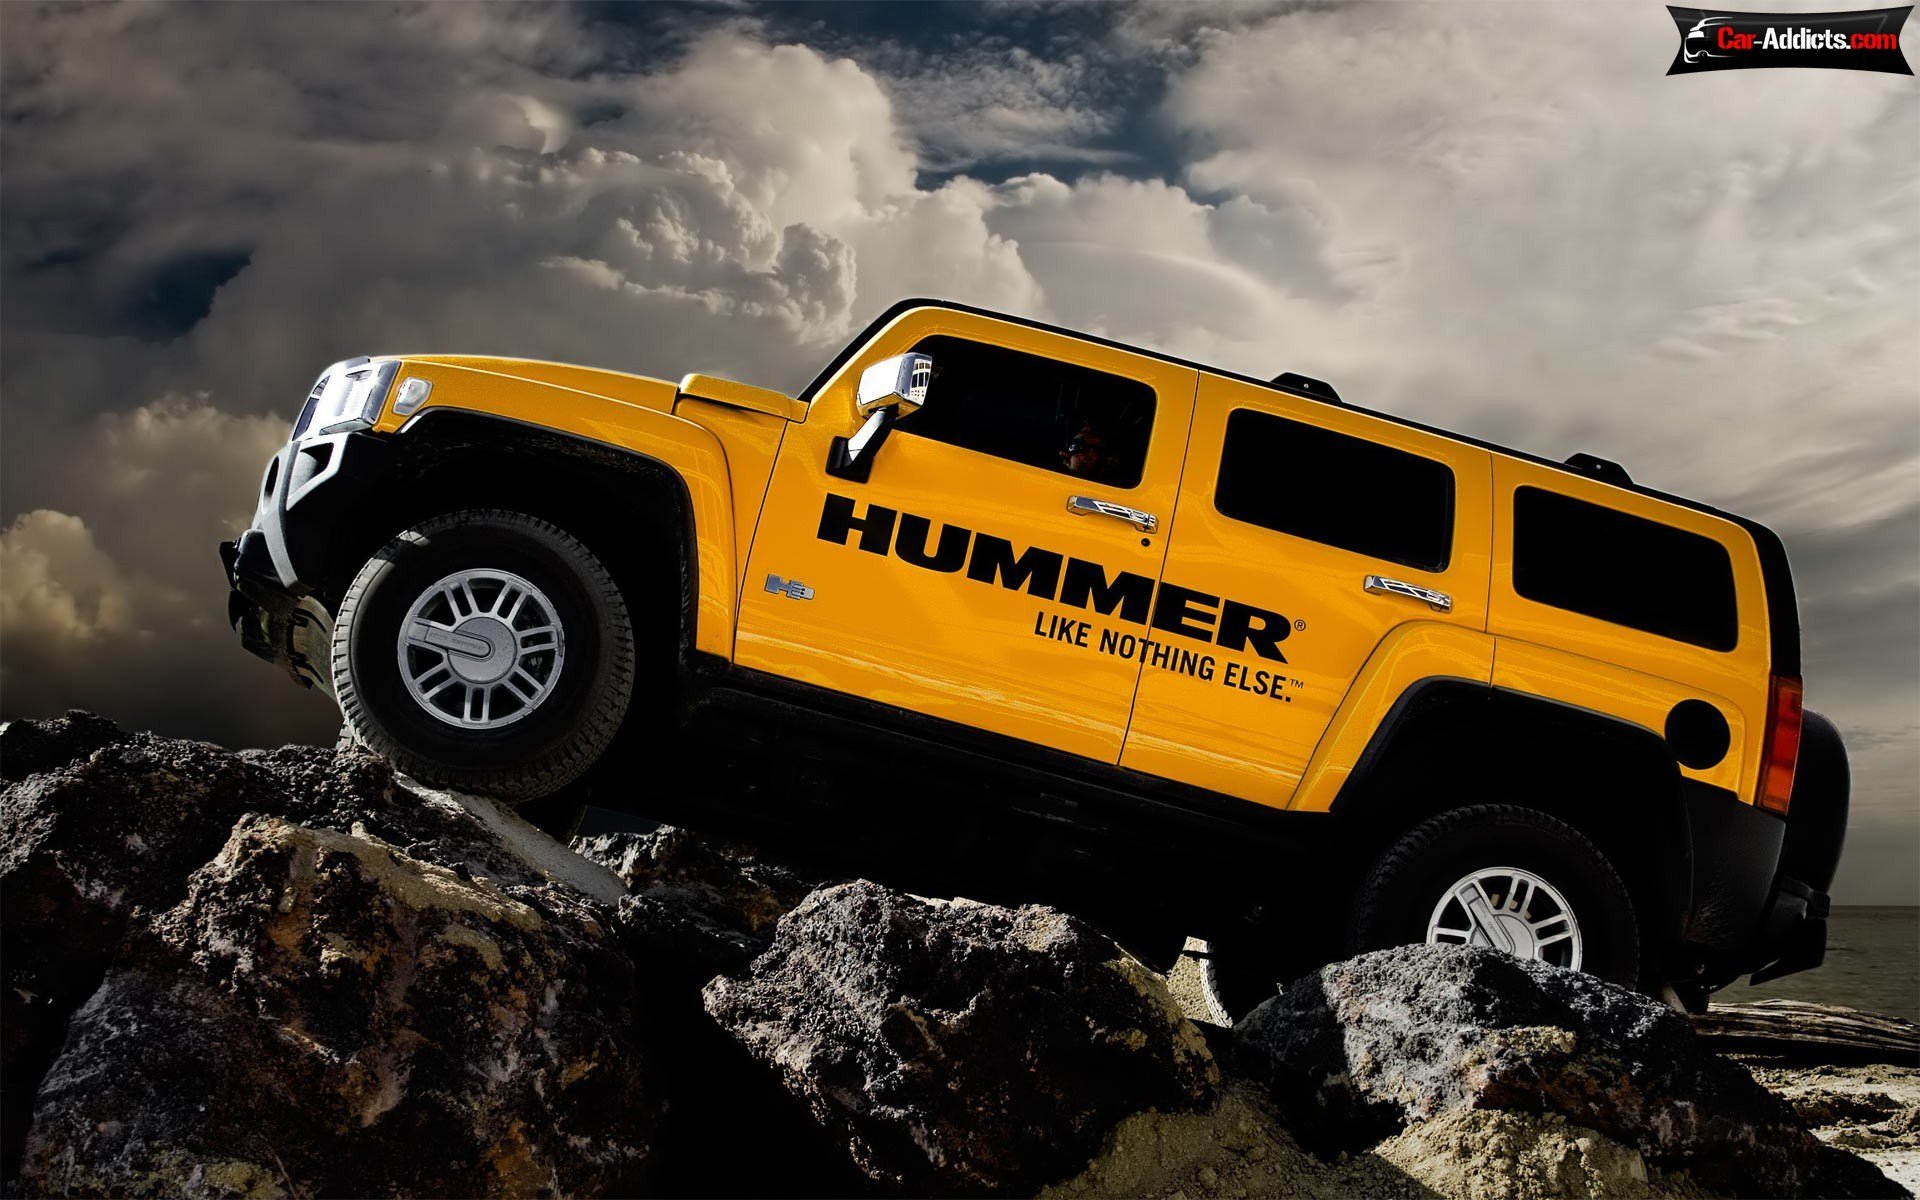 Latest Hummer Car Wallpapers Hd Wide Video Info Price Free Download